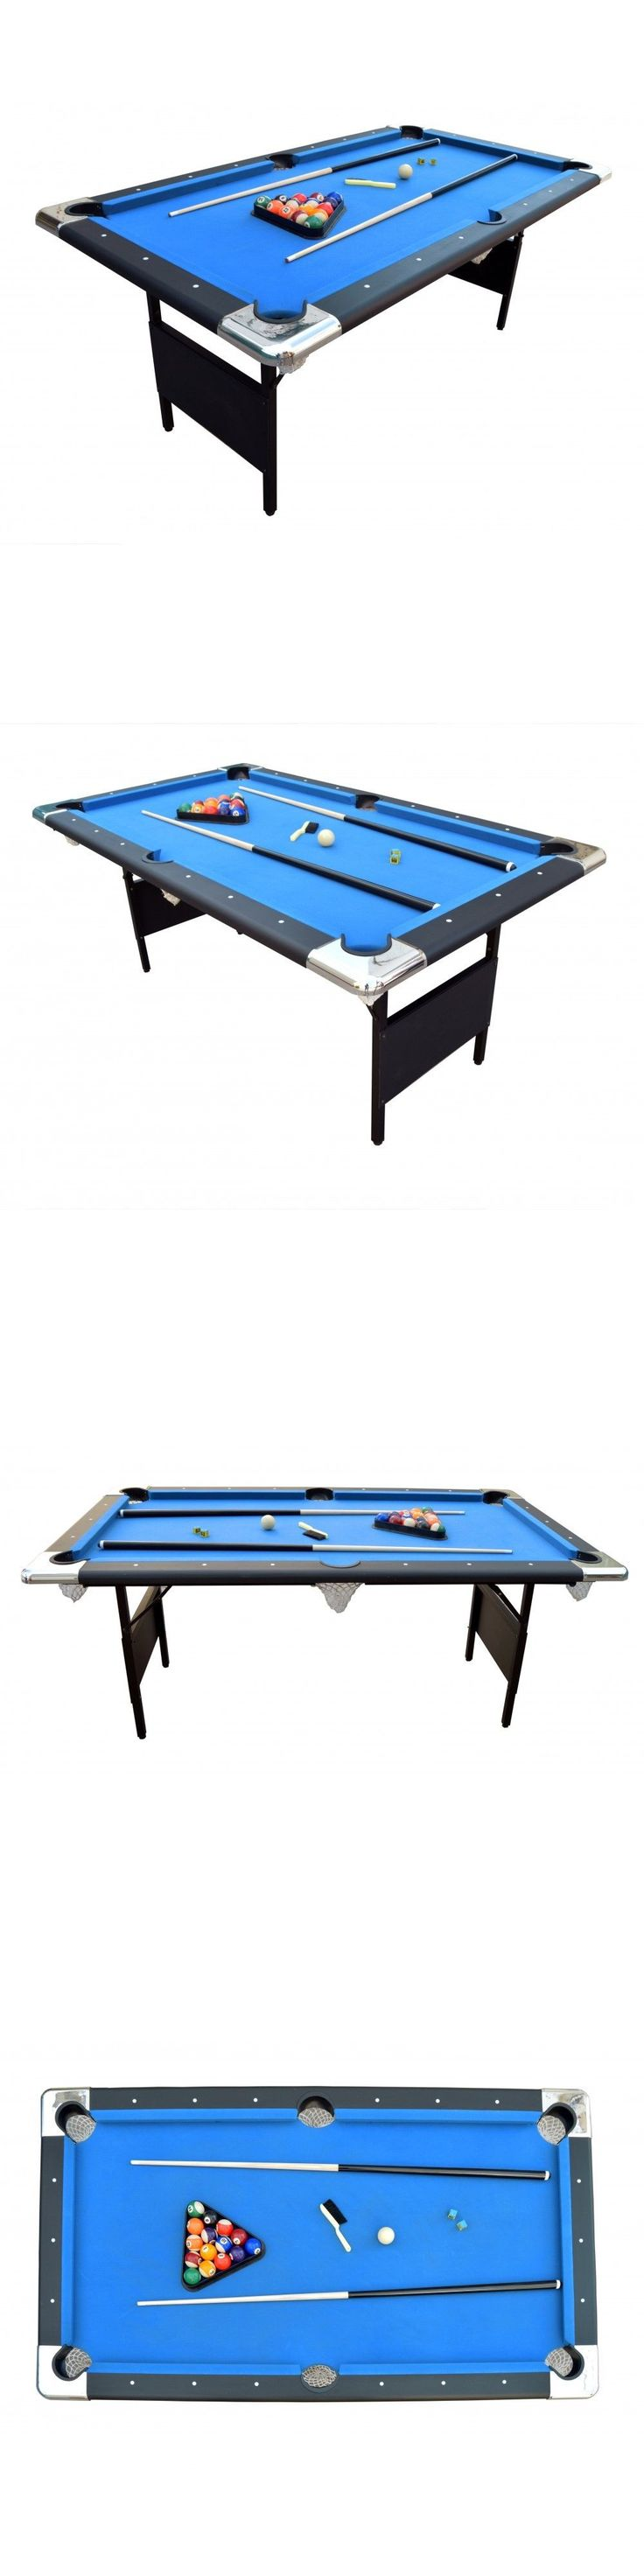 Tables 21213: Carmelli Fairmont 6 Portable Pool Table Includes Billiard Balls Cues Rack Brush -> BUY IT NOW ONLY: $439.95 on eBay!